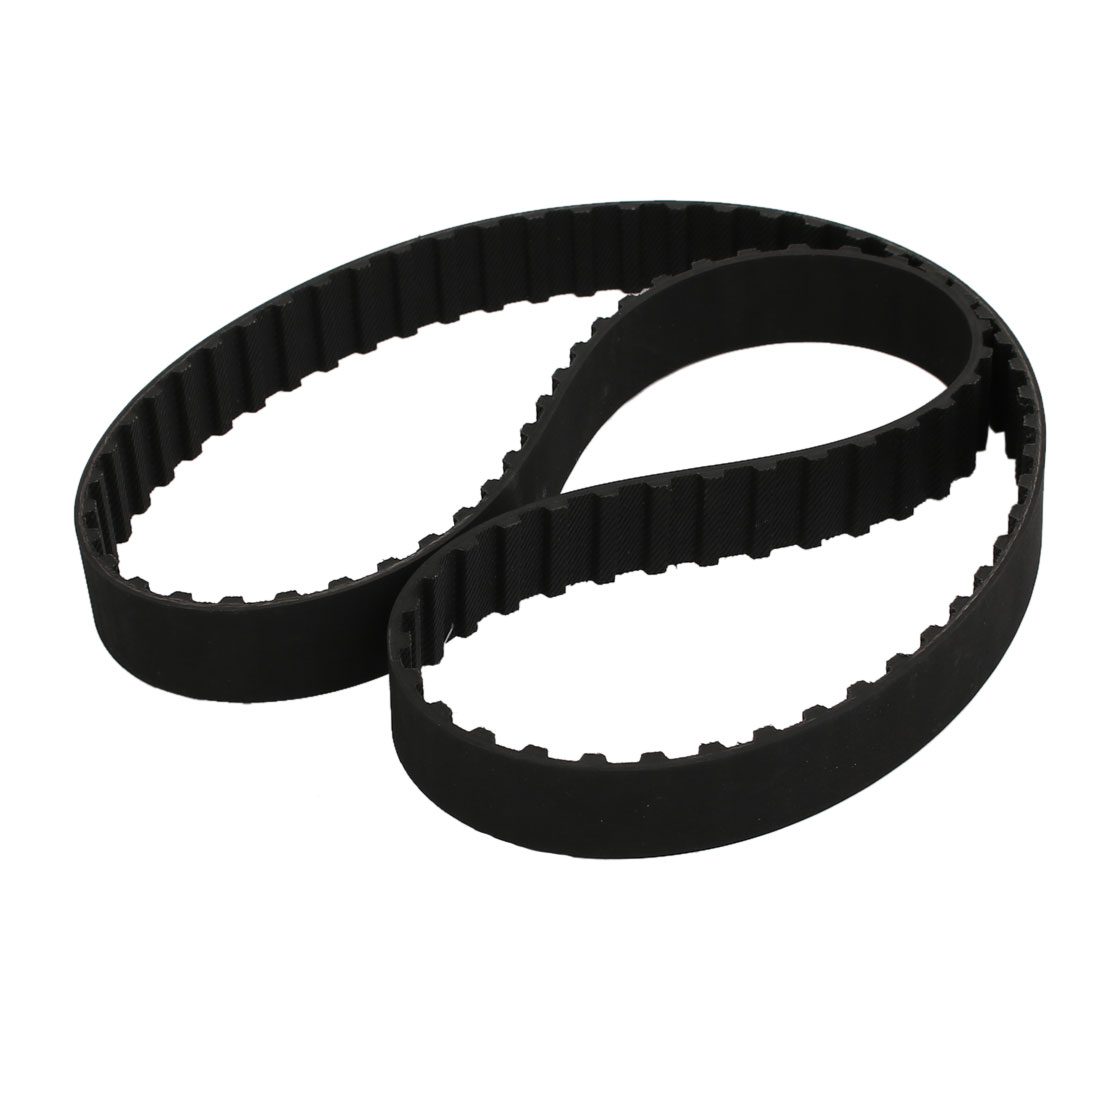 341L 91 Teeth 20mm Width 9.525mm Pitch Stepper Motor Rubber Timing Belt Black